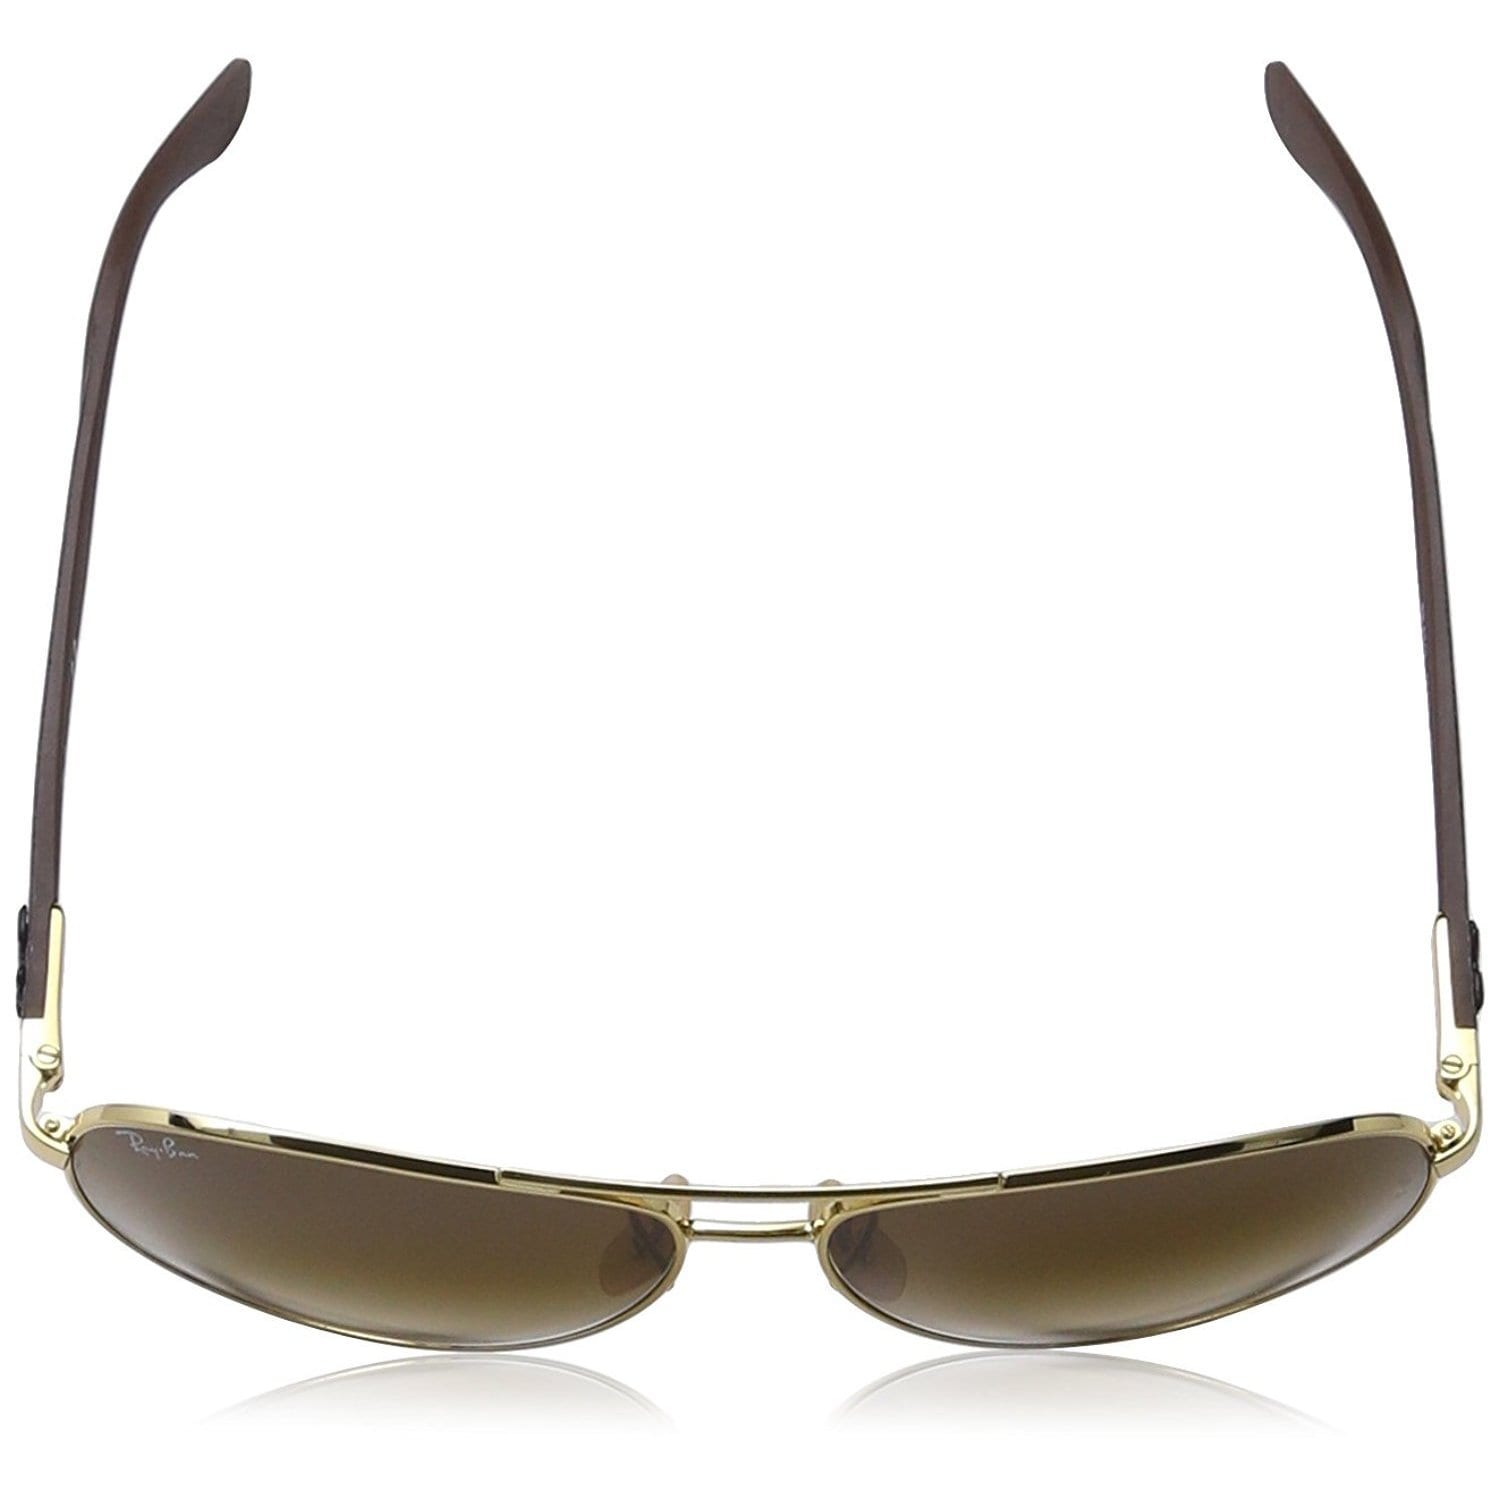 2400d06e5d Shop Ray-Ban RB8313 001 51 Unisex Gold Grey Frame Light Brown Gradient Lens  Sunglasses - Free Shipping Today - Overstock - 15811971